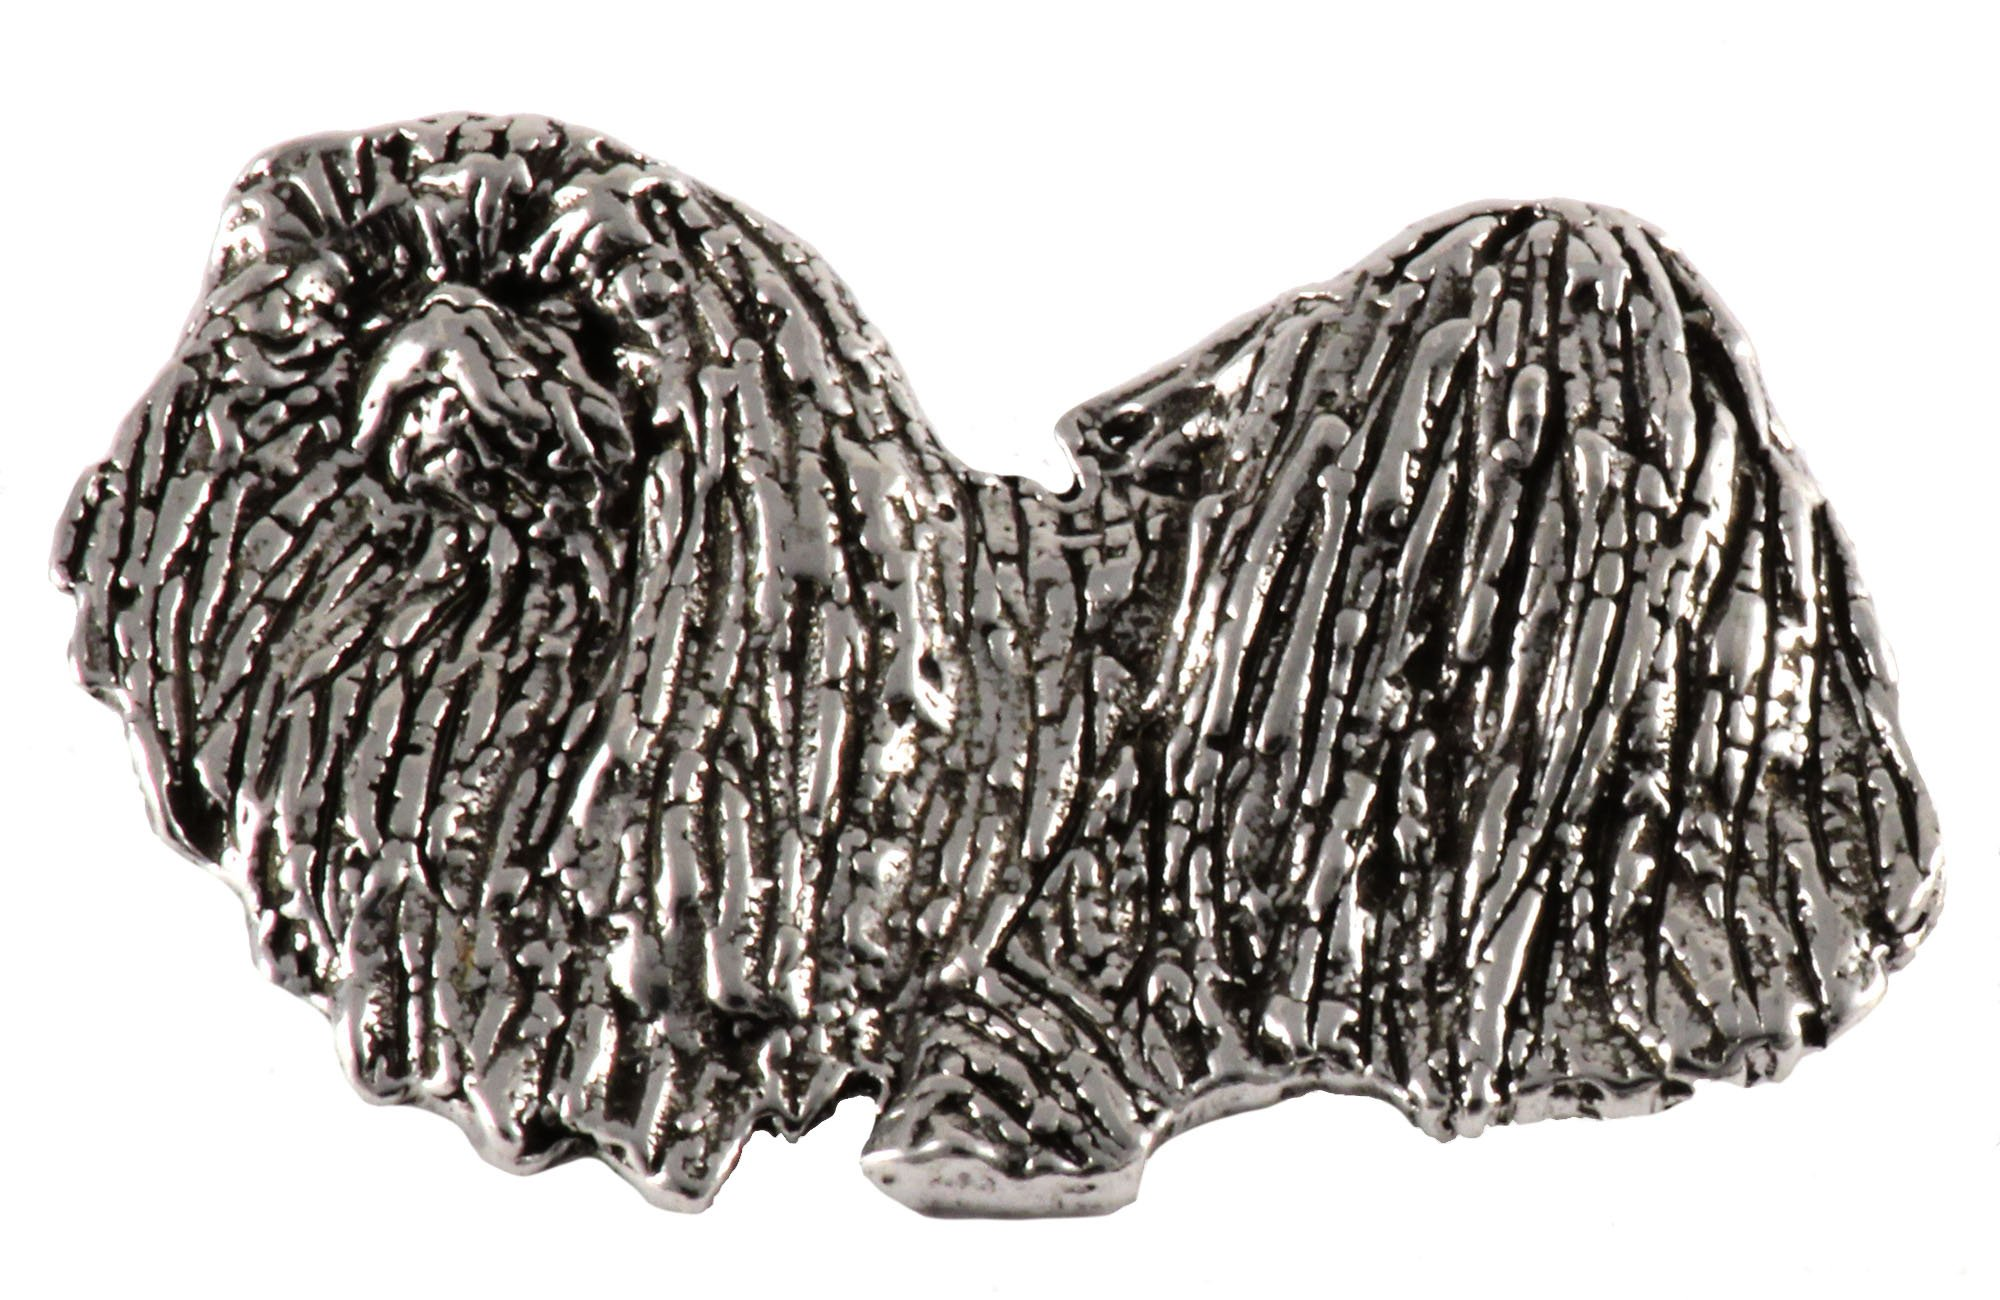 Pekingese-Dog-Pewter-Lapel-Pin-Brooch-Jewelry-D436F